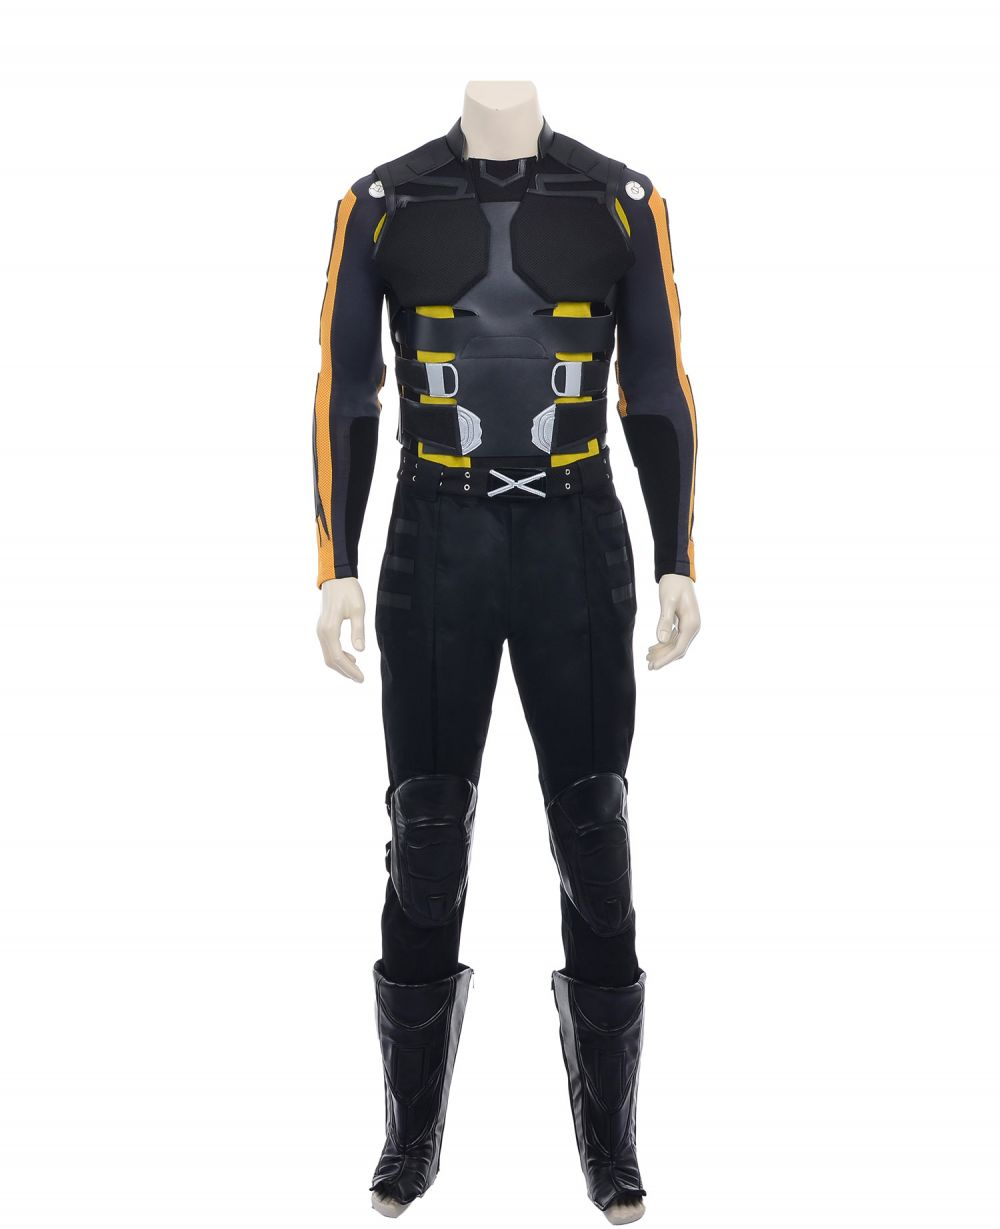 New arrival Wolverine Cosplay Costume- X-Men movies: Days of Future Past